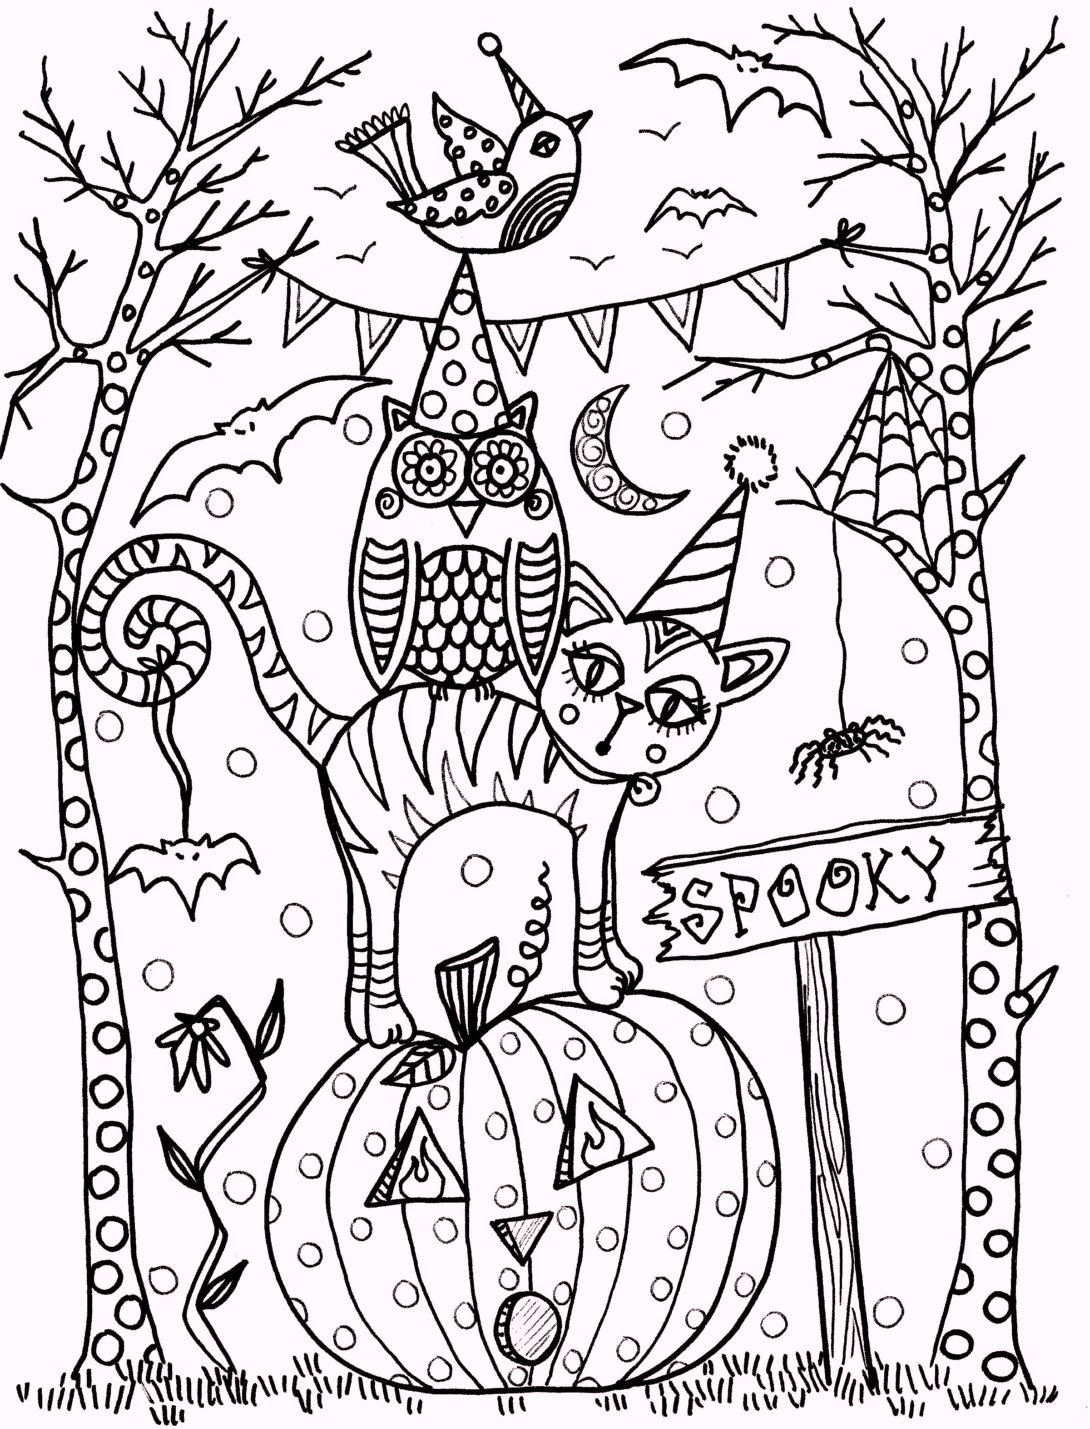 vintage-artistic-halloween-coloring-pages